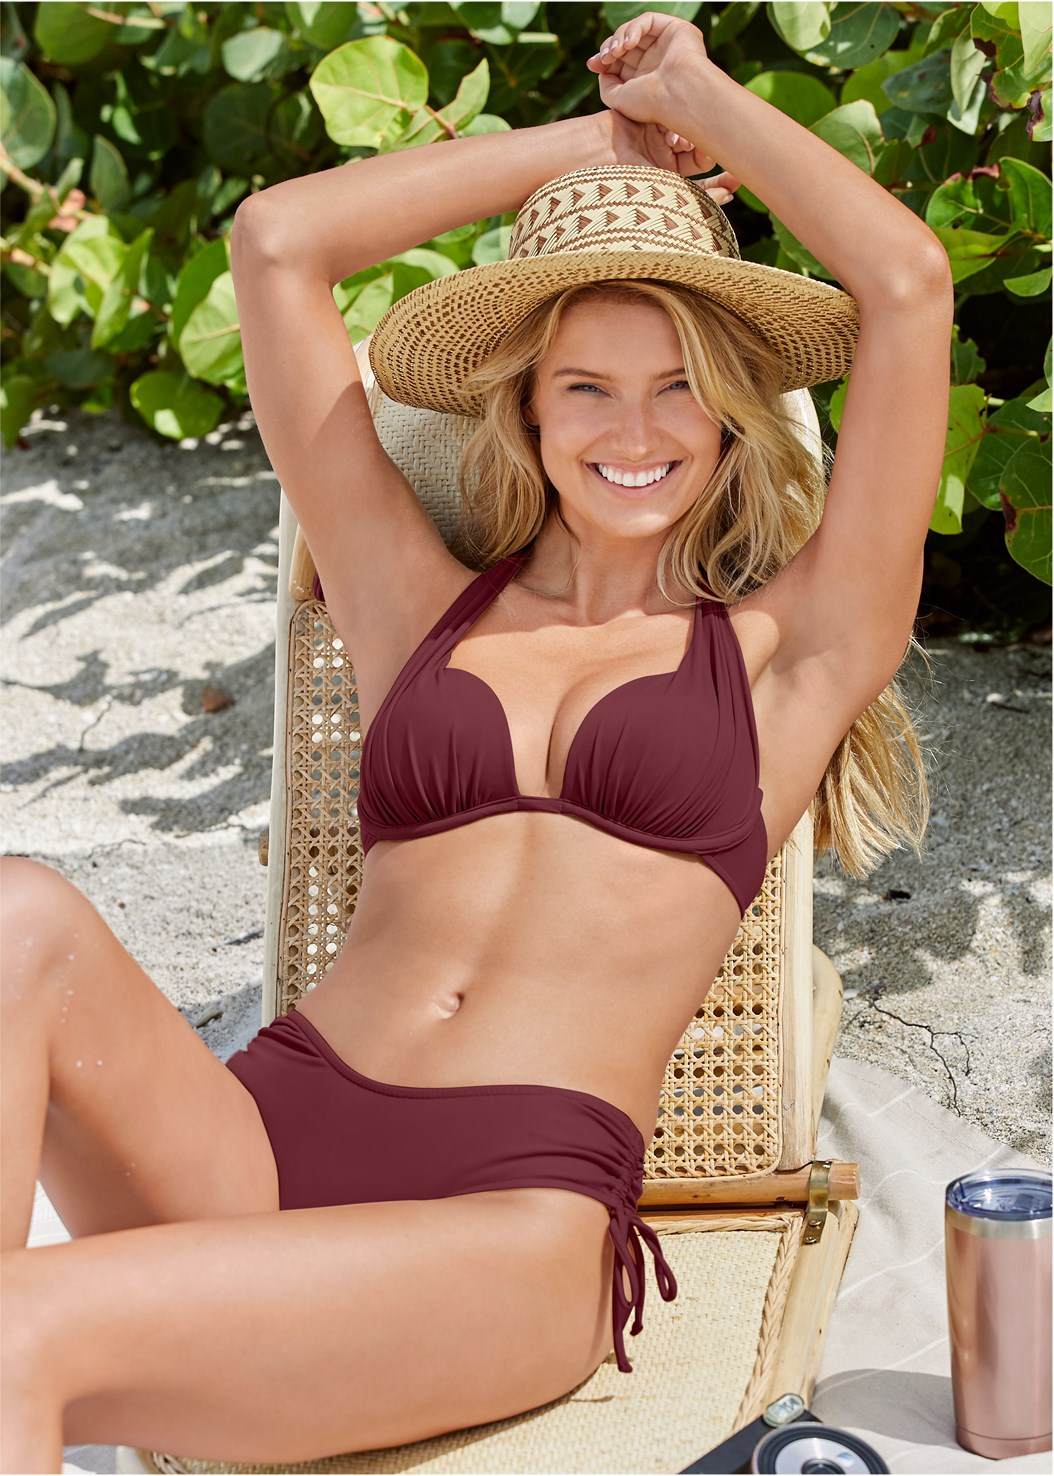 The Magnolia Bottom,Marilyn Underwire Push Up Halter Top,Lovely Lift Wrap Bikini Top,Jillian Underwire Top